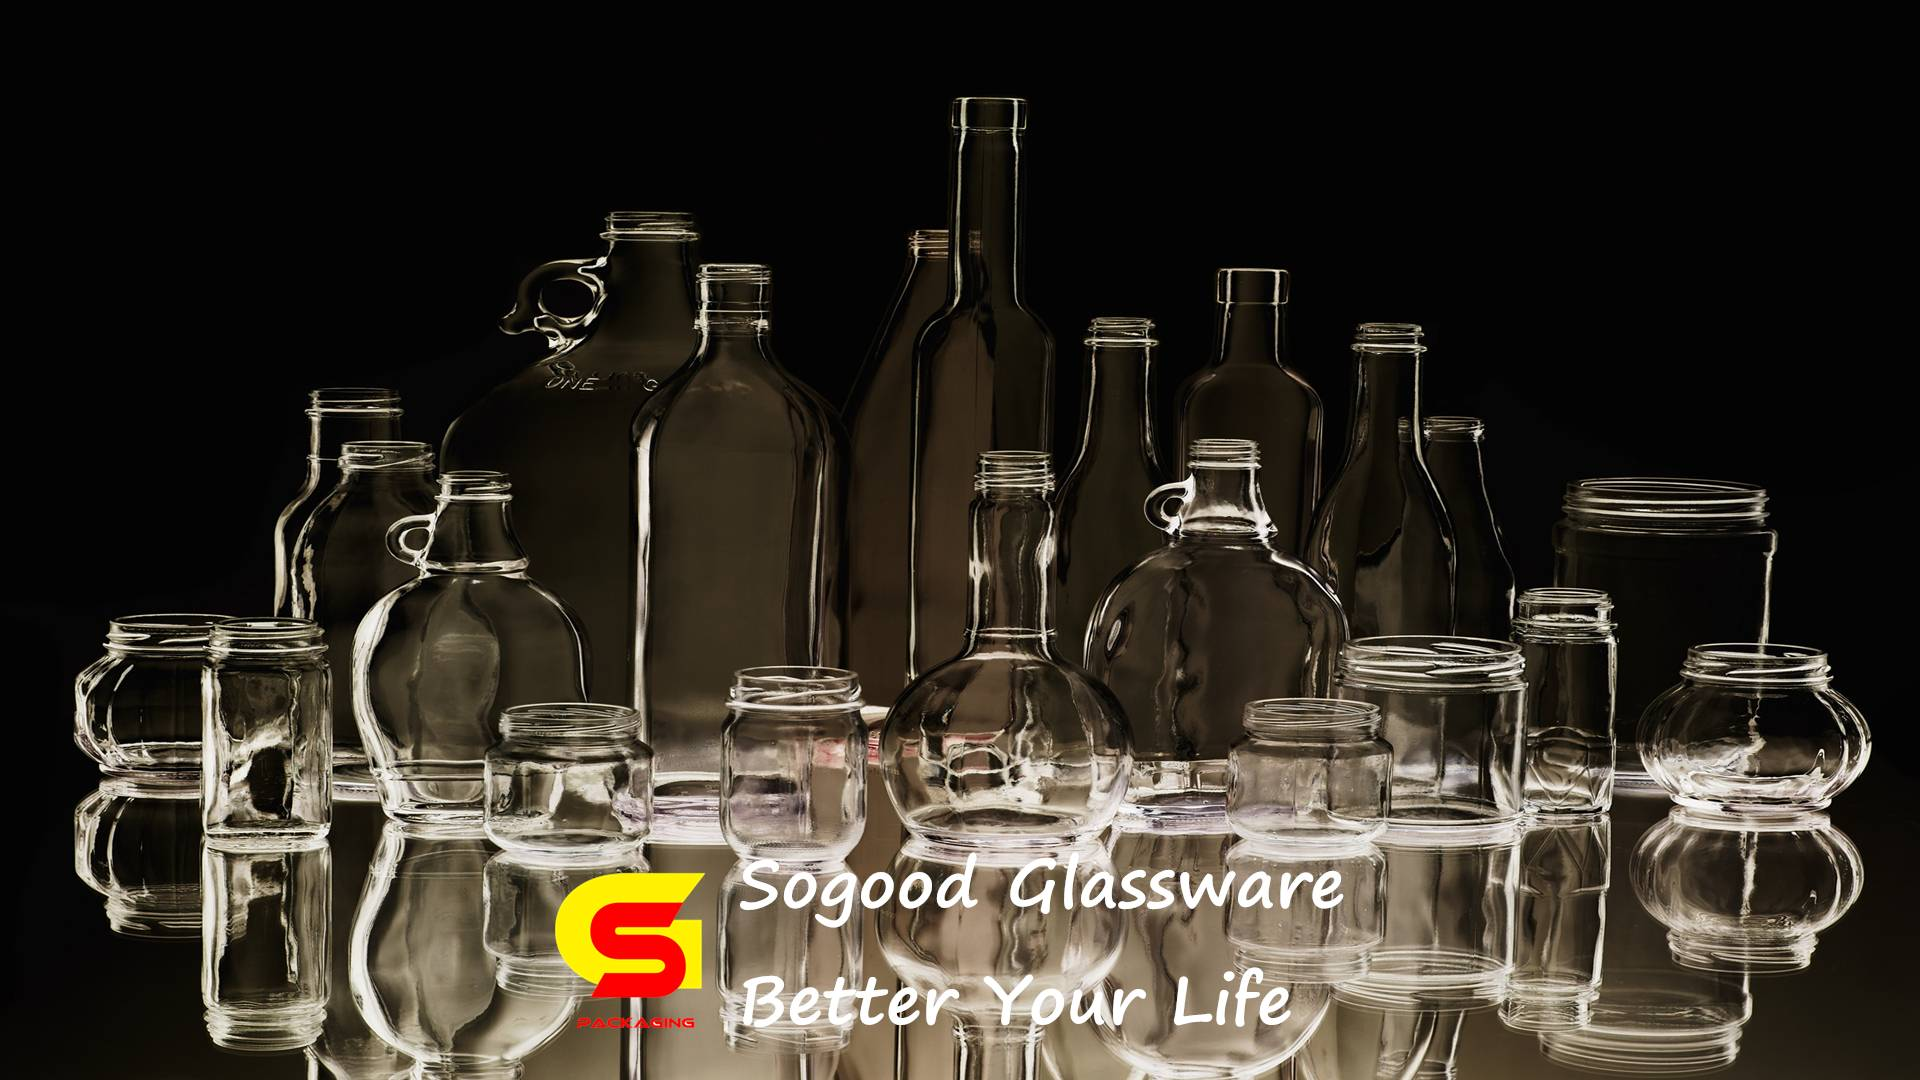 Sogood Glassware Better Your Life